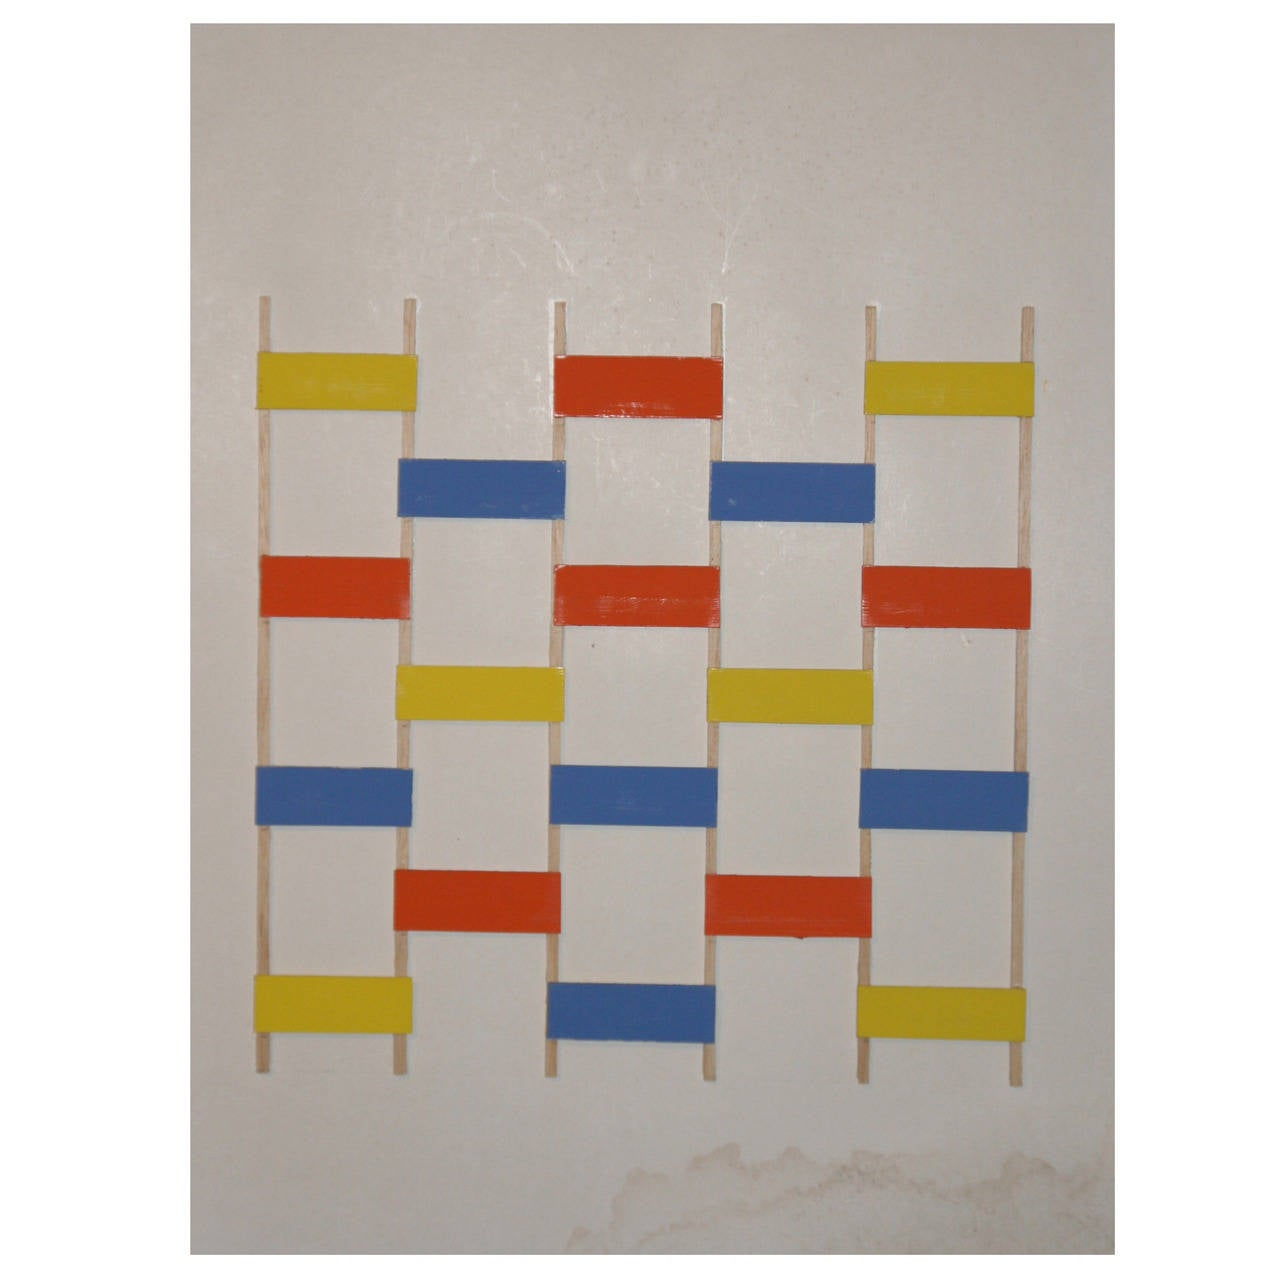 Painting by Albert Chubac, Wood Collage, circa 1980, Signed